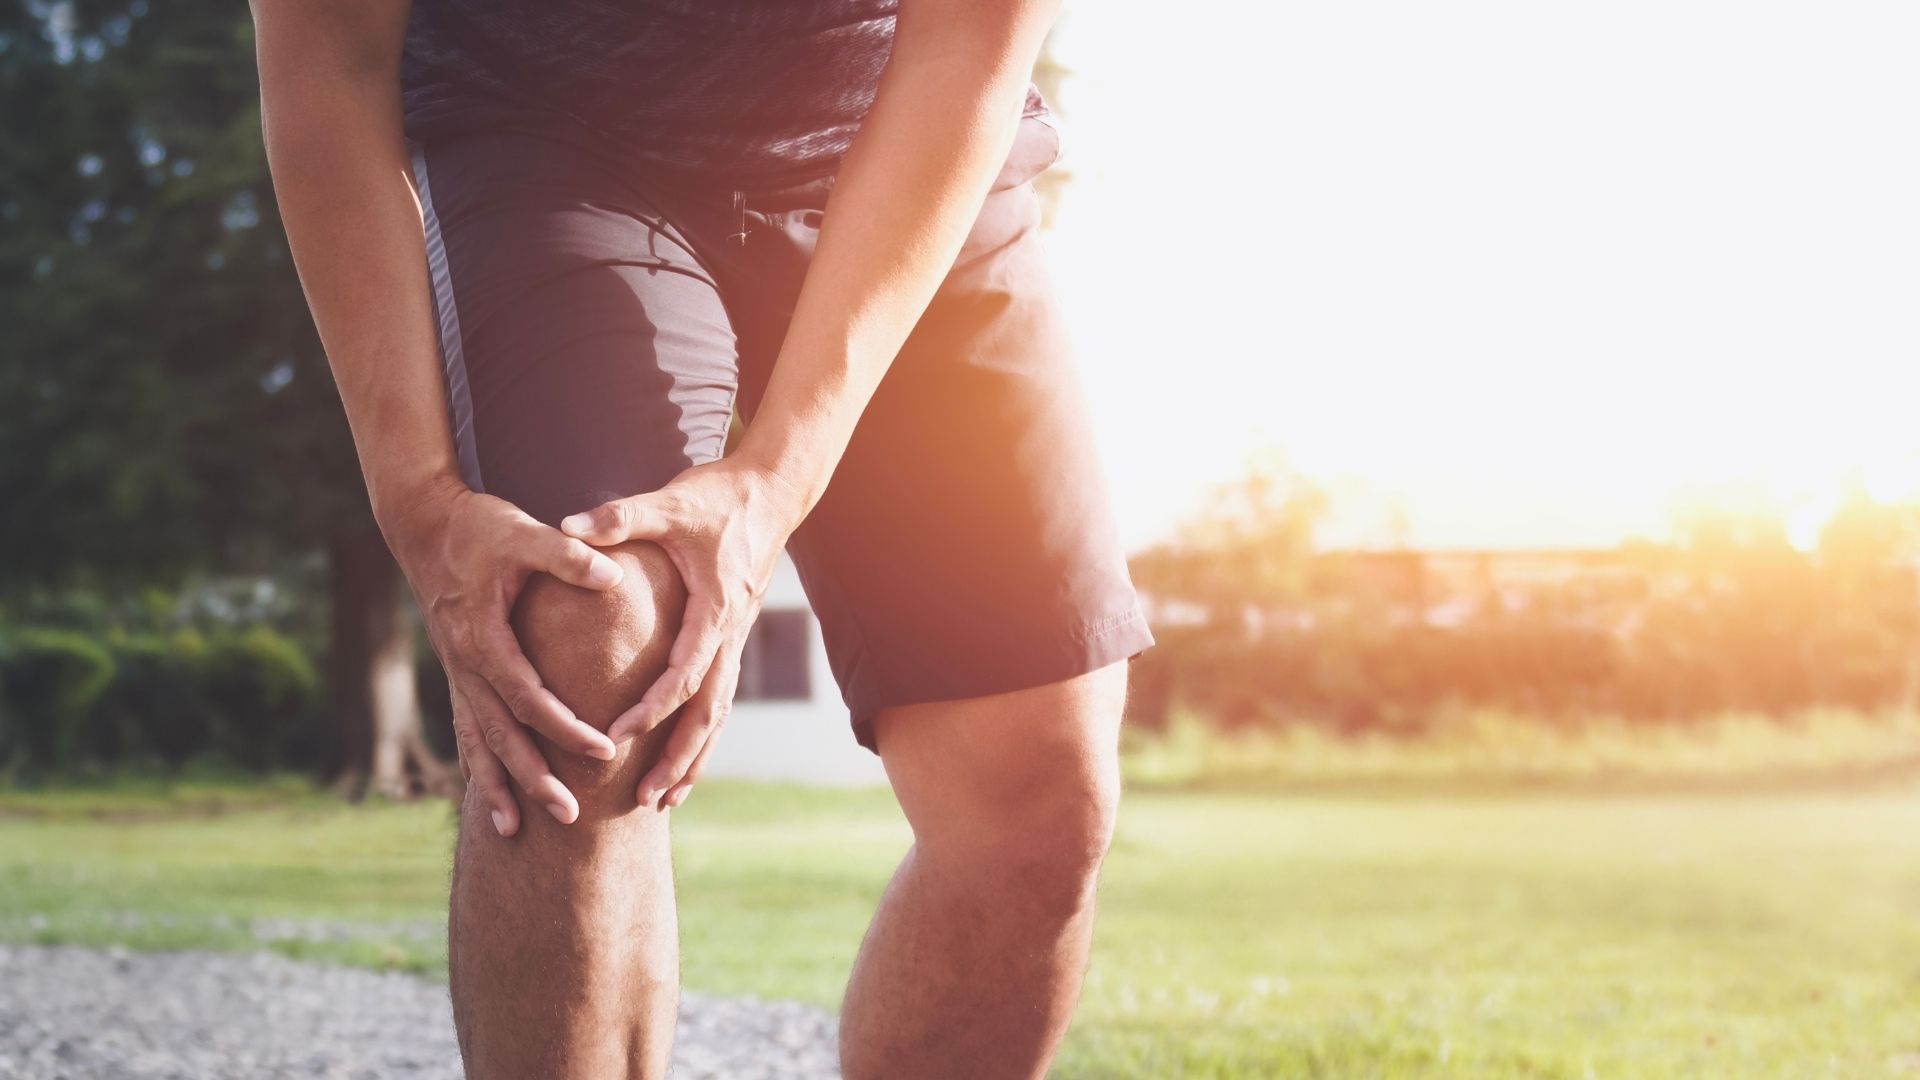 Medical evidence of beneficial effects on osteoarthritis